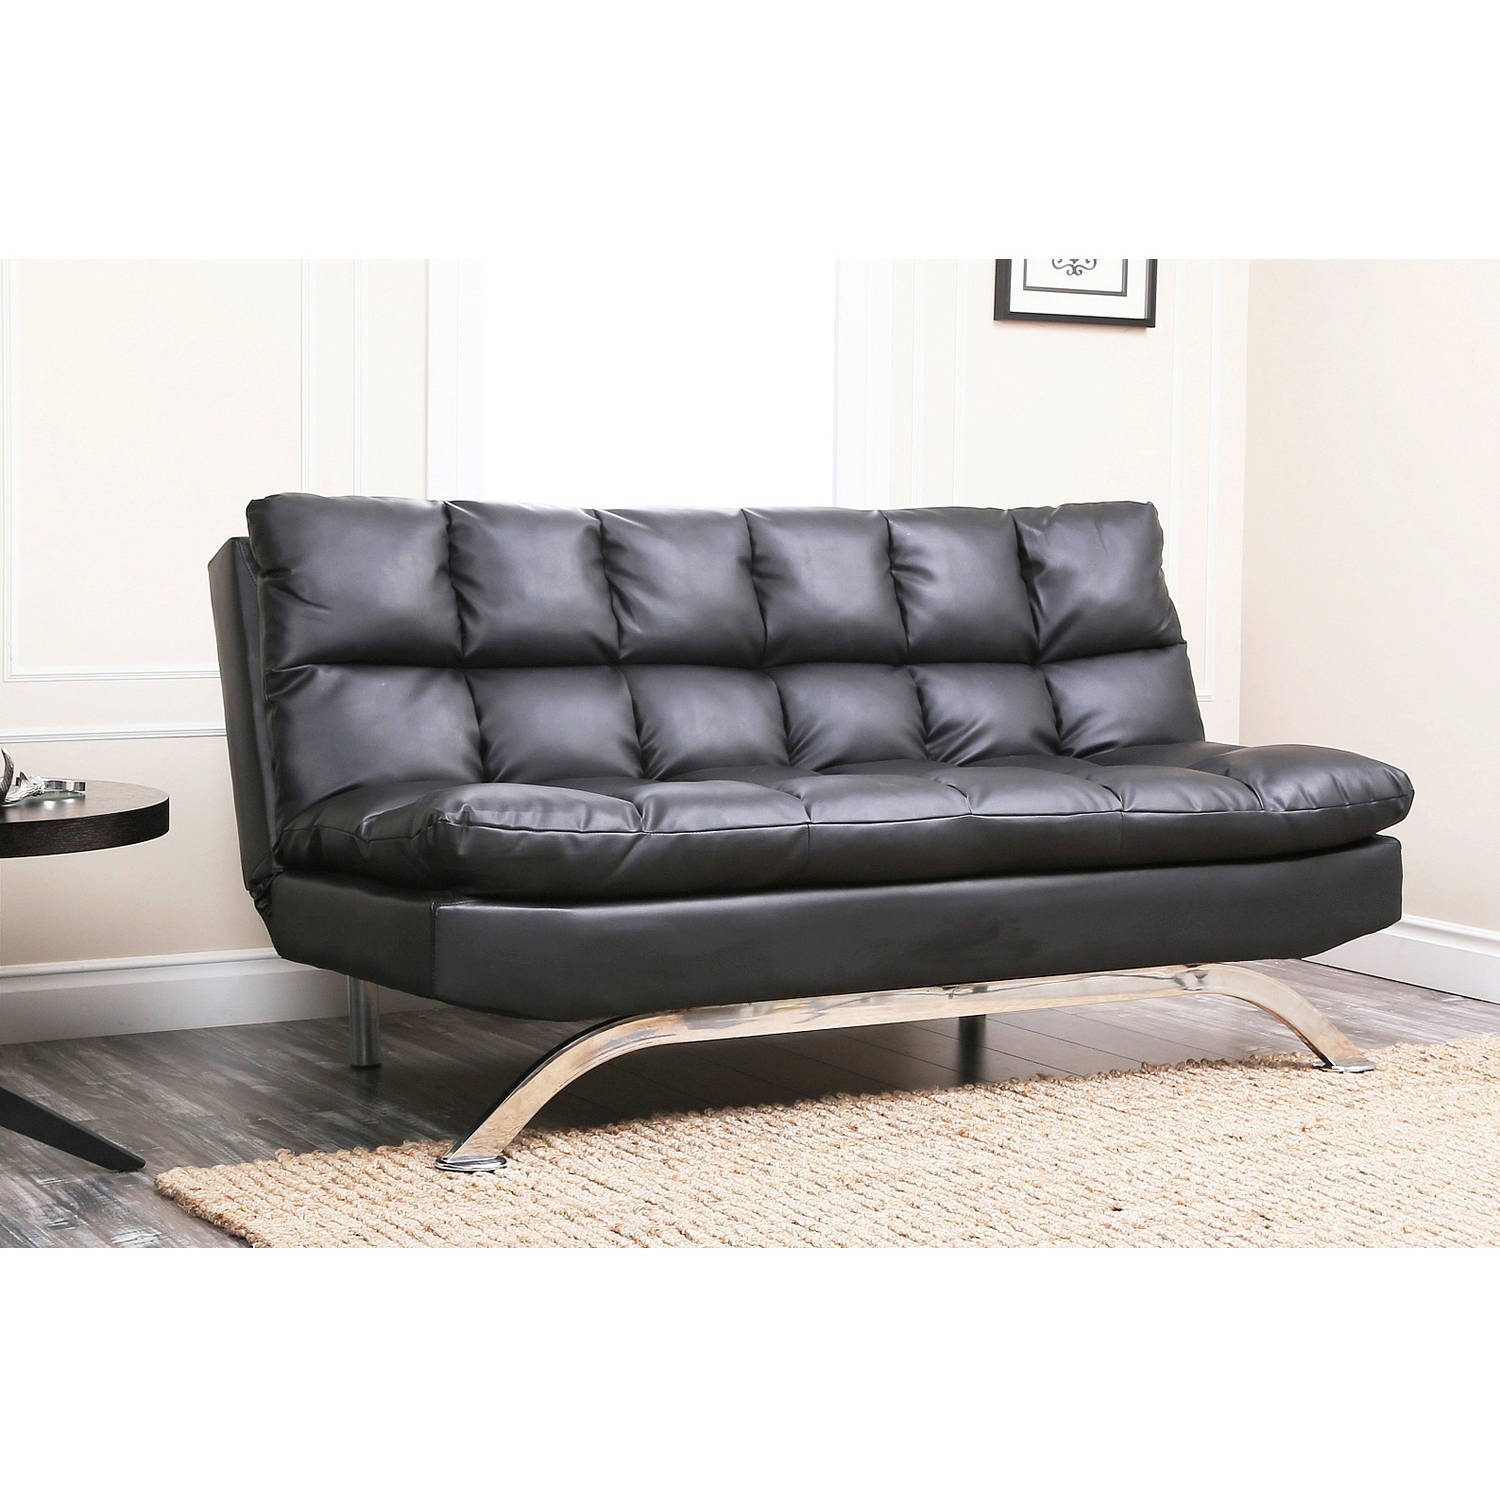 Devon & Claire Parma Black Leather Euro Lounger Sofa